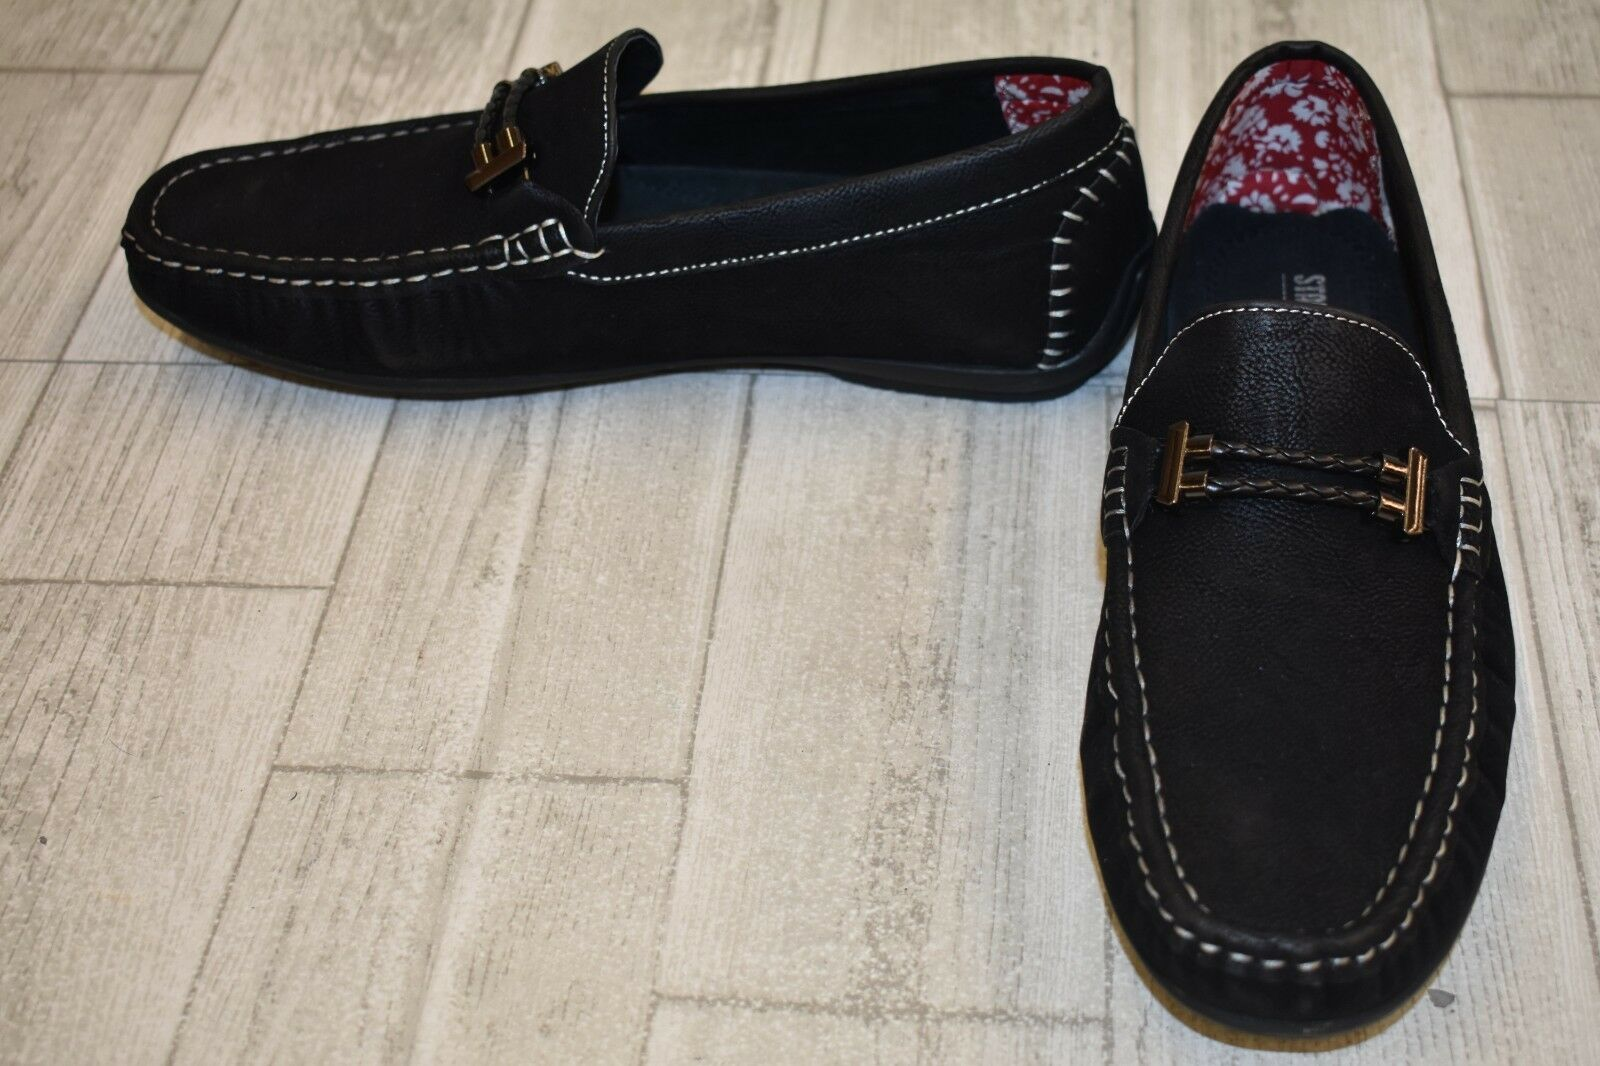 Stacy Adams Percy Loafer, Men's Size 8.5 M, Black